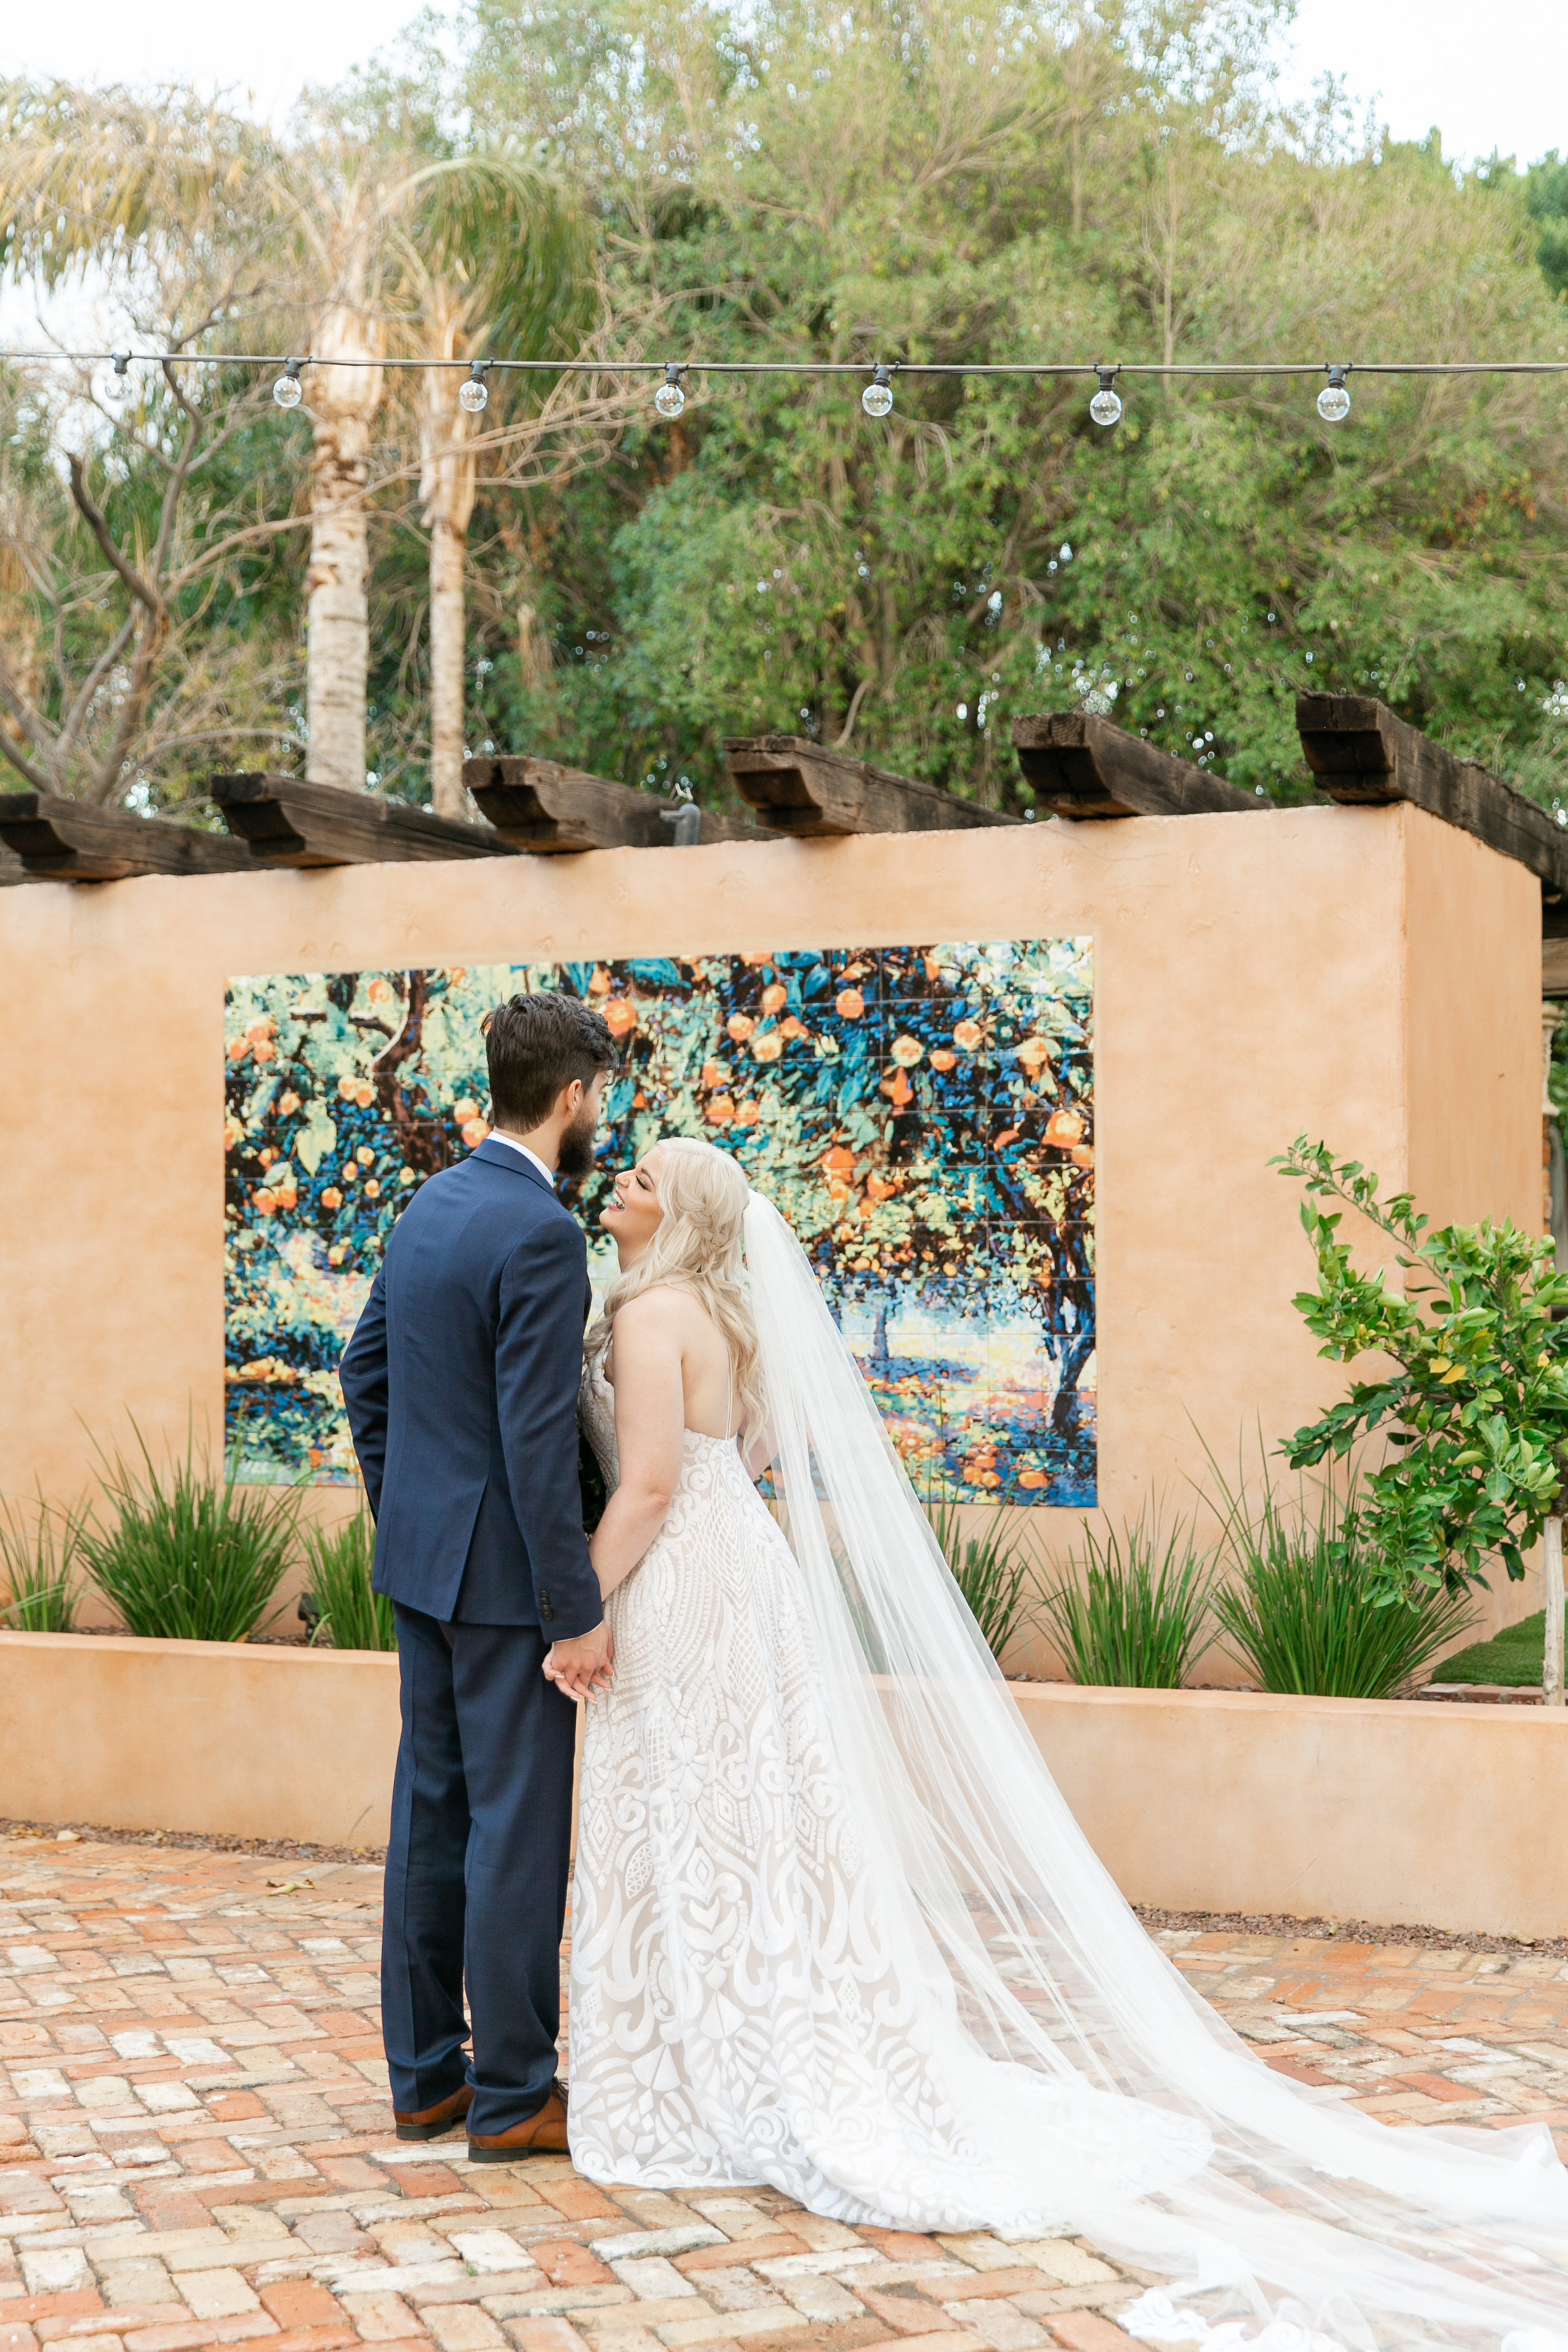 Karlie Colleen Photography - The Royal Palms Wedding - Some Like It Classic - Alex & Sam-531